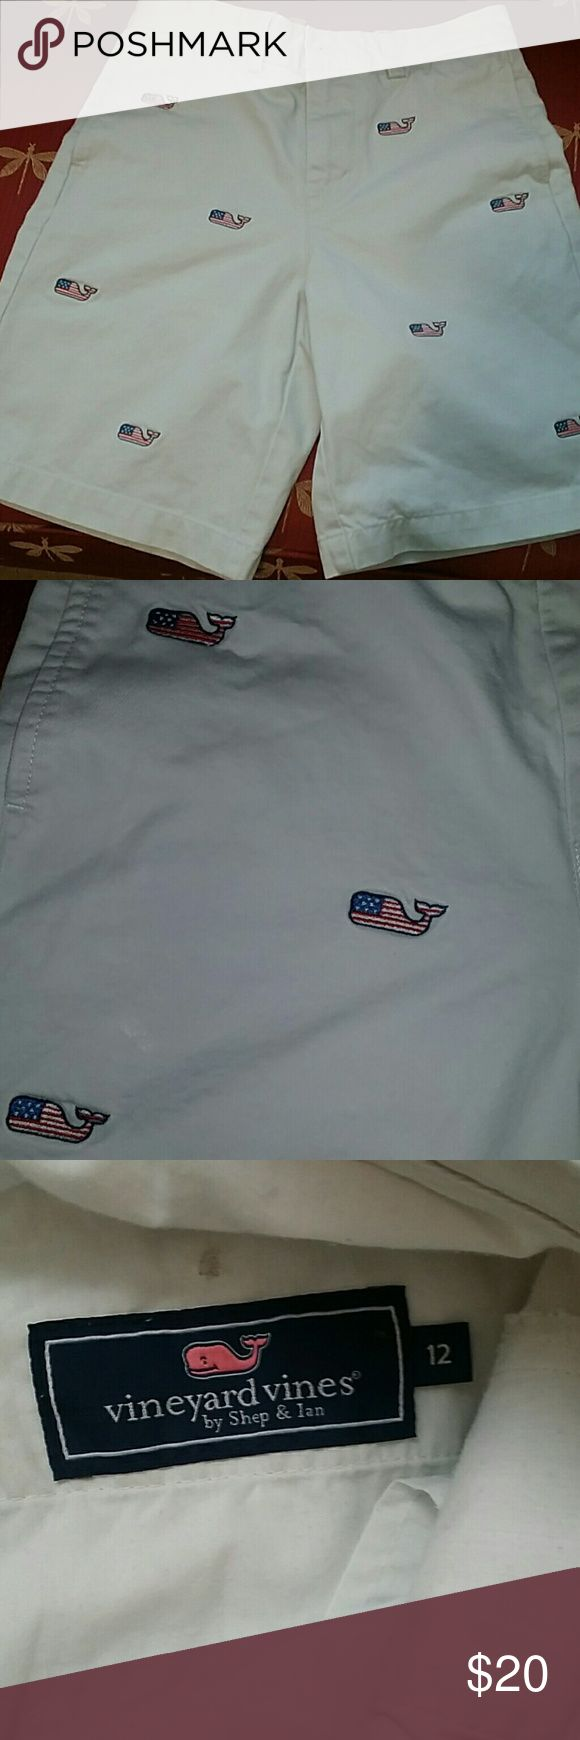 VINYARD VINES USA SHORTS Awesome quality shorts,excellent  condition Vinyard Vines  Shorts